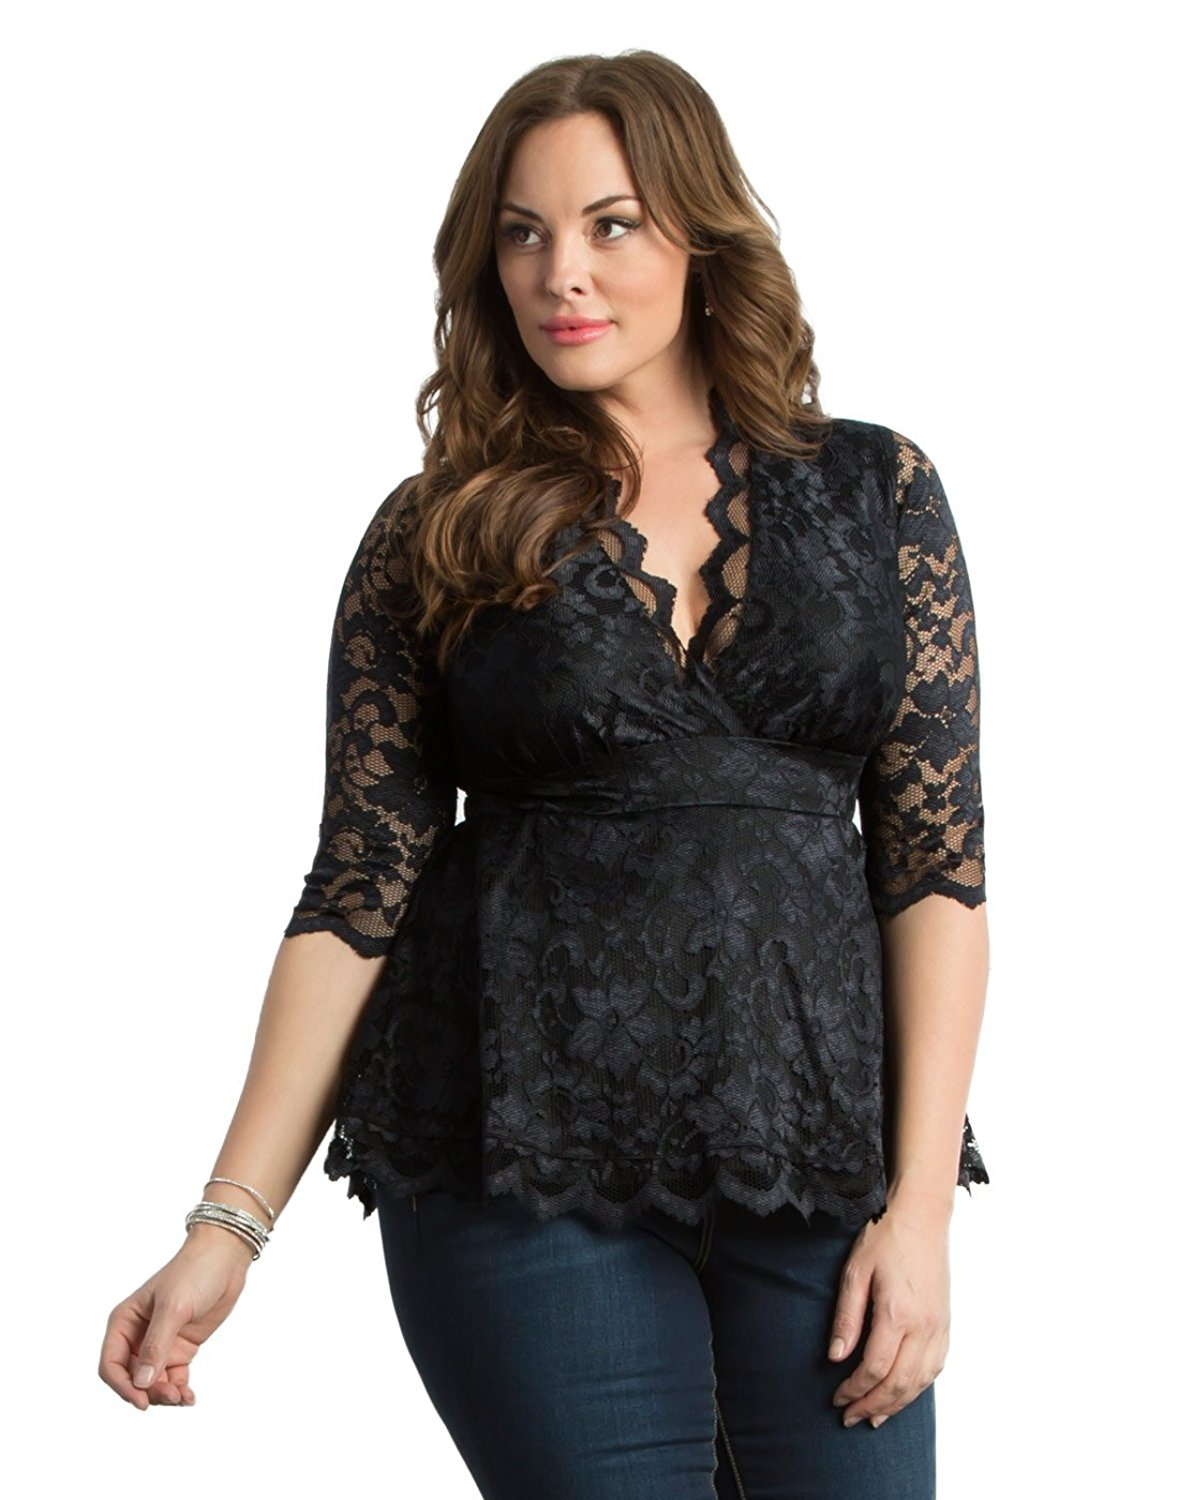 a347871acd4 ... Astoria Lace Peplum Gown. 228.00. Kiyonna Women s Plus Size Linden Lace  Top 0x Black Lace Black Lining